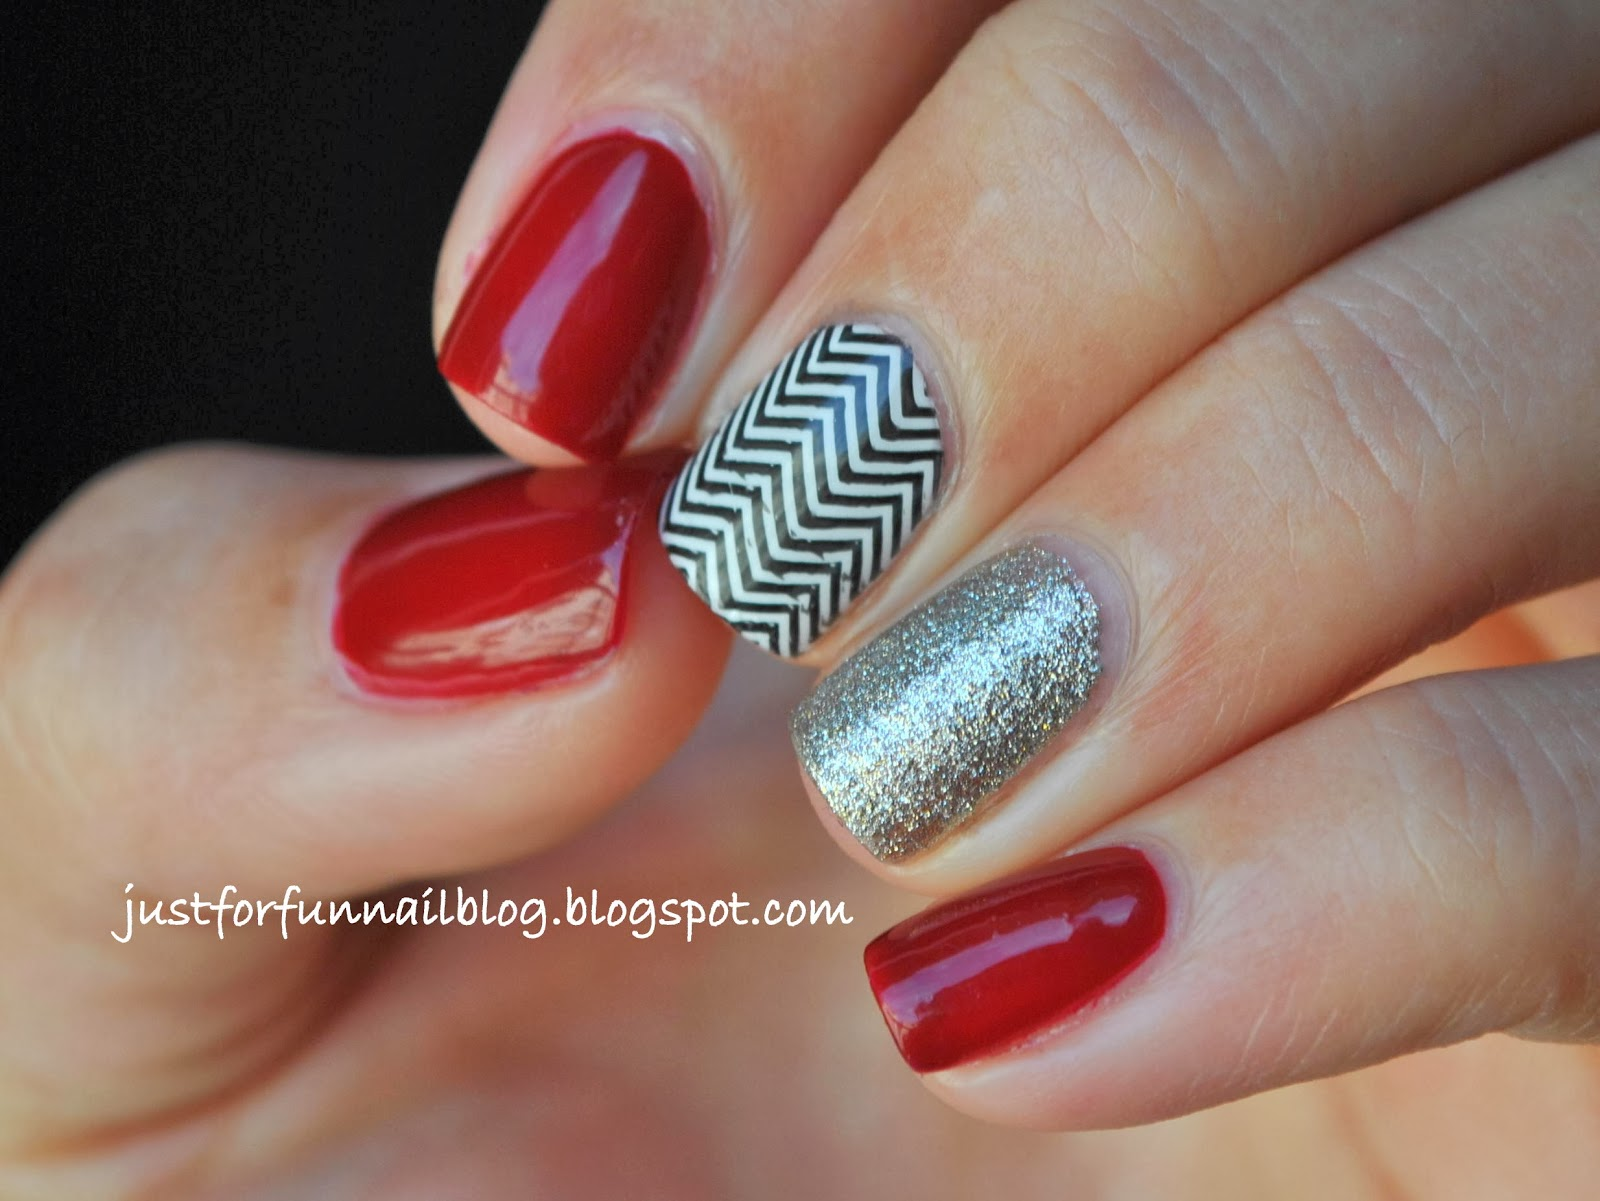 Deep Red (Chic - 289 Obsession), Glitter & Chevrons